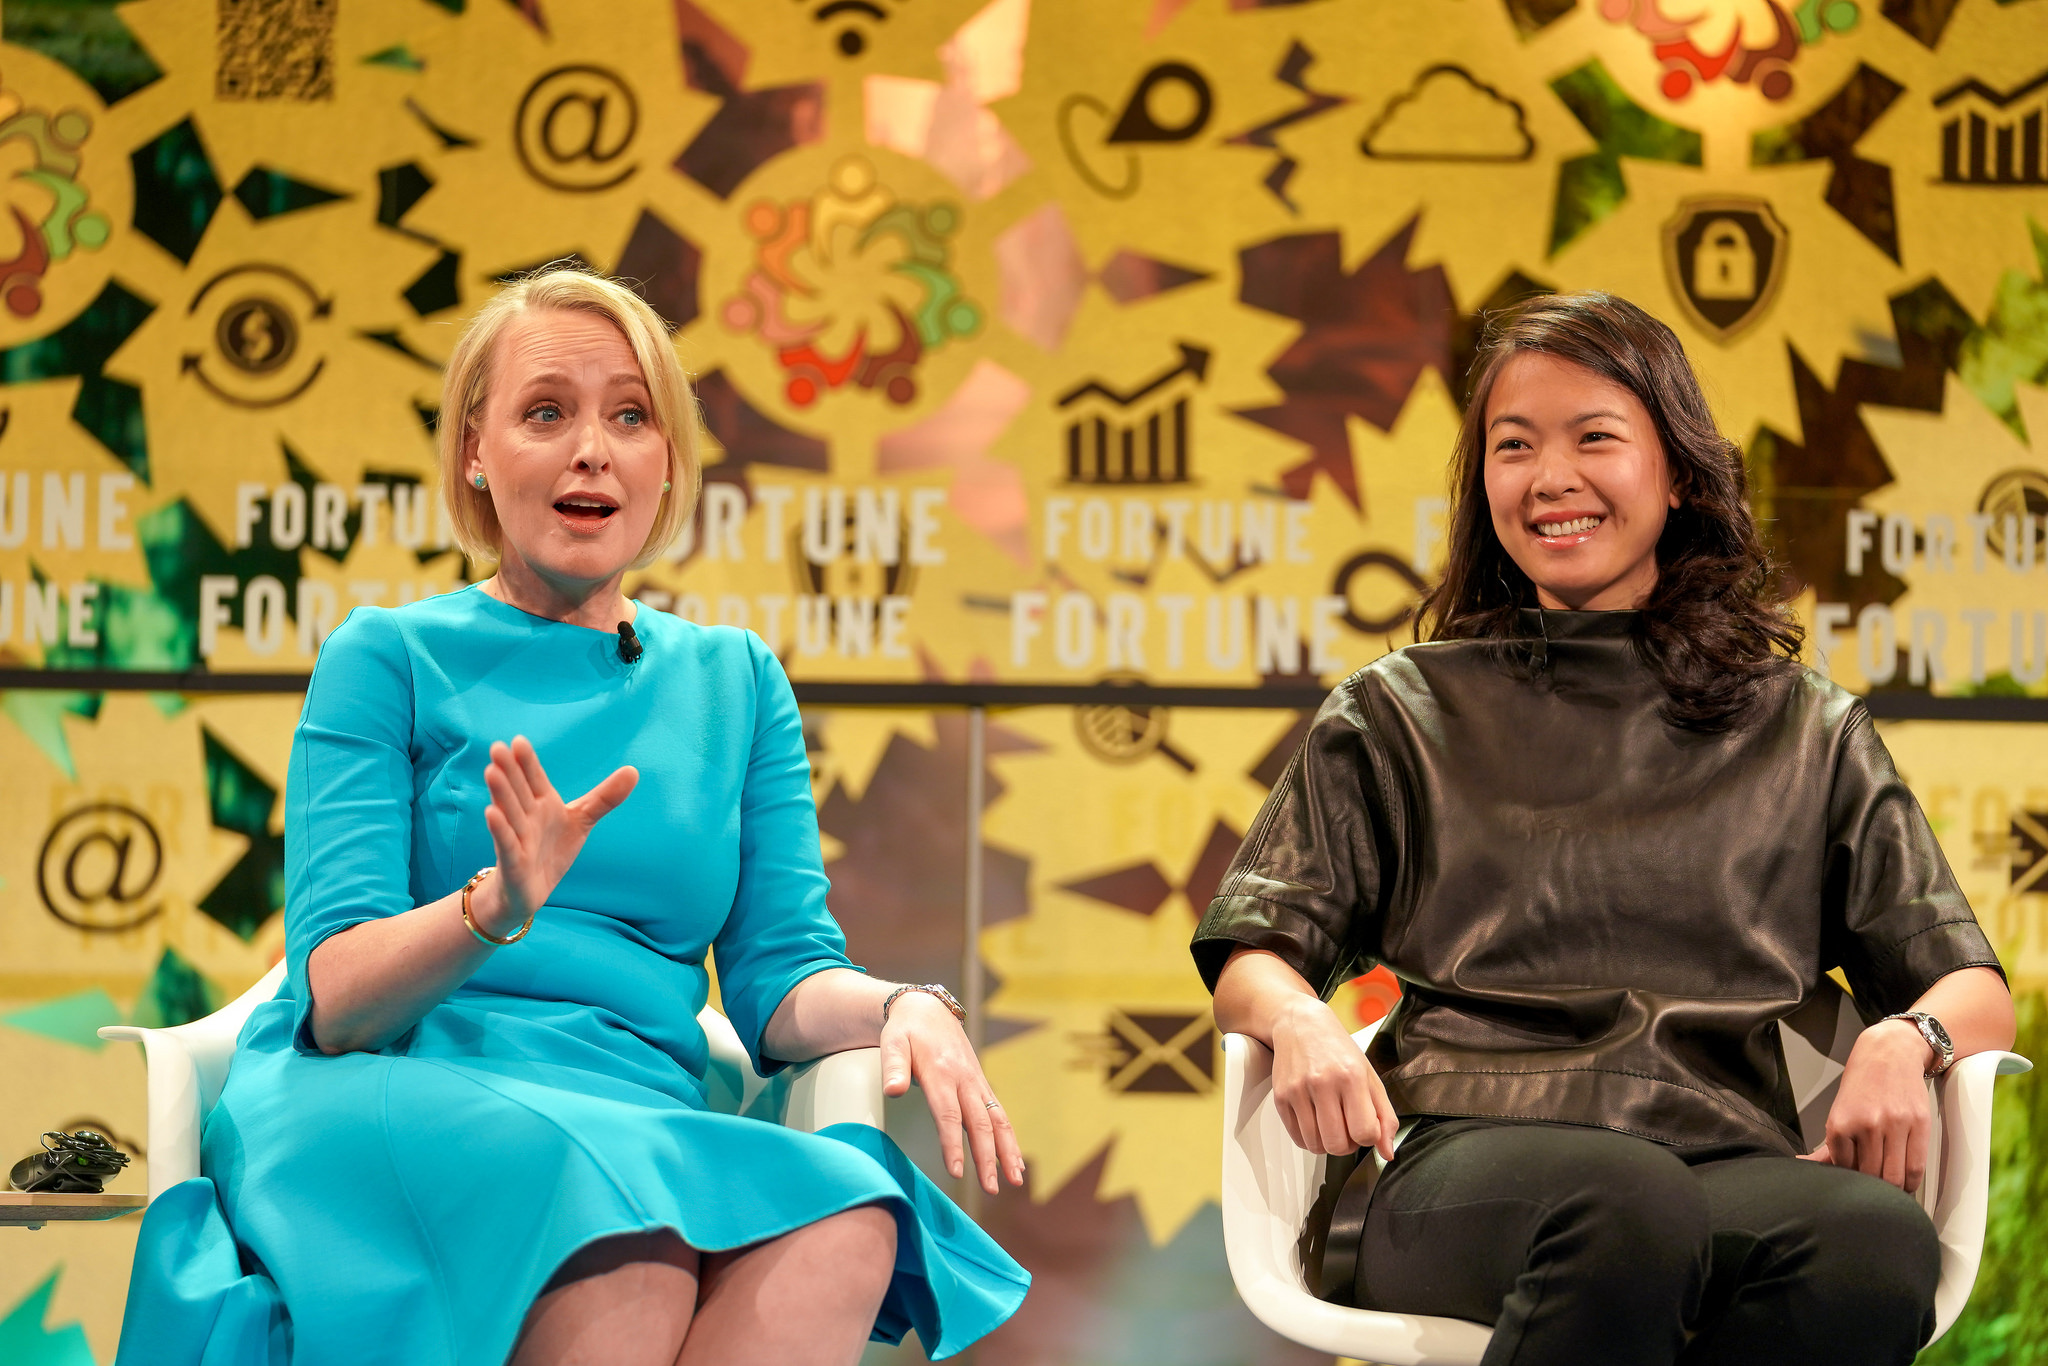 Julie Sweet (L), Accenture's CEO for North America, and Christine Moy (R), JPMorgan Chase's blockchain team leader for the corporate and investment bank, discuss how businesses should determine uses for blockchains at Fortune's Global Forum in Toronto, Canada on Wed. Oct. 17th, 2018.